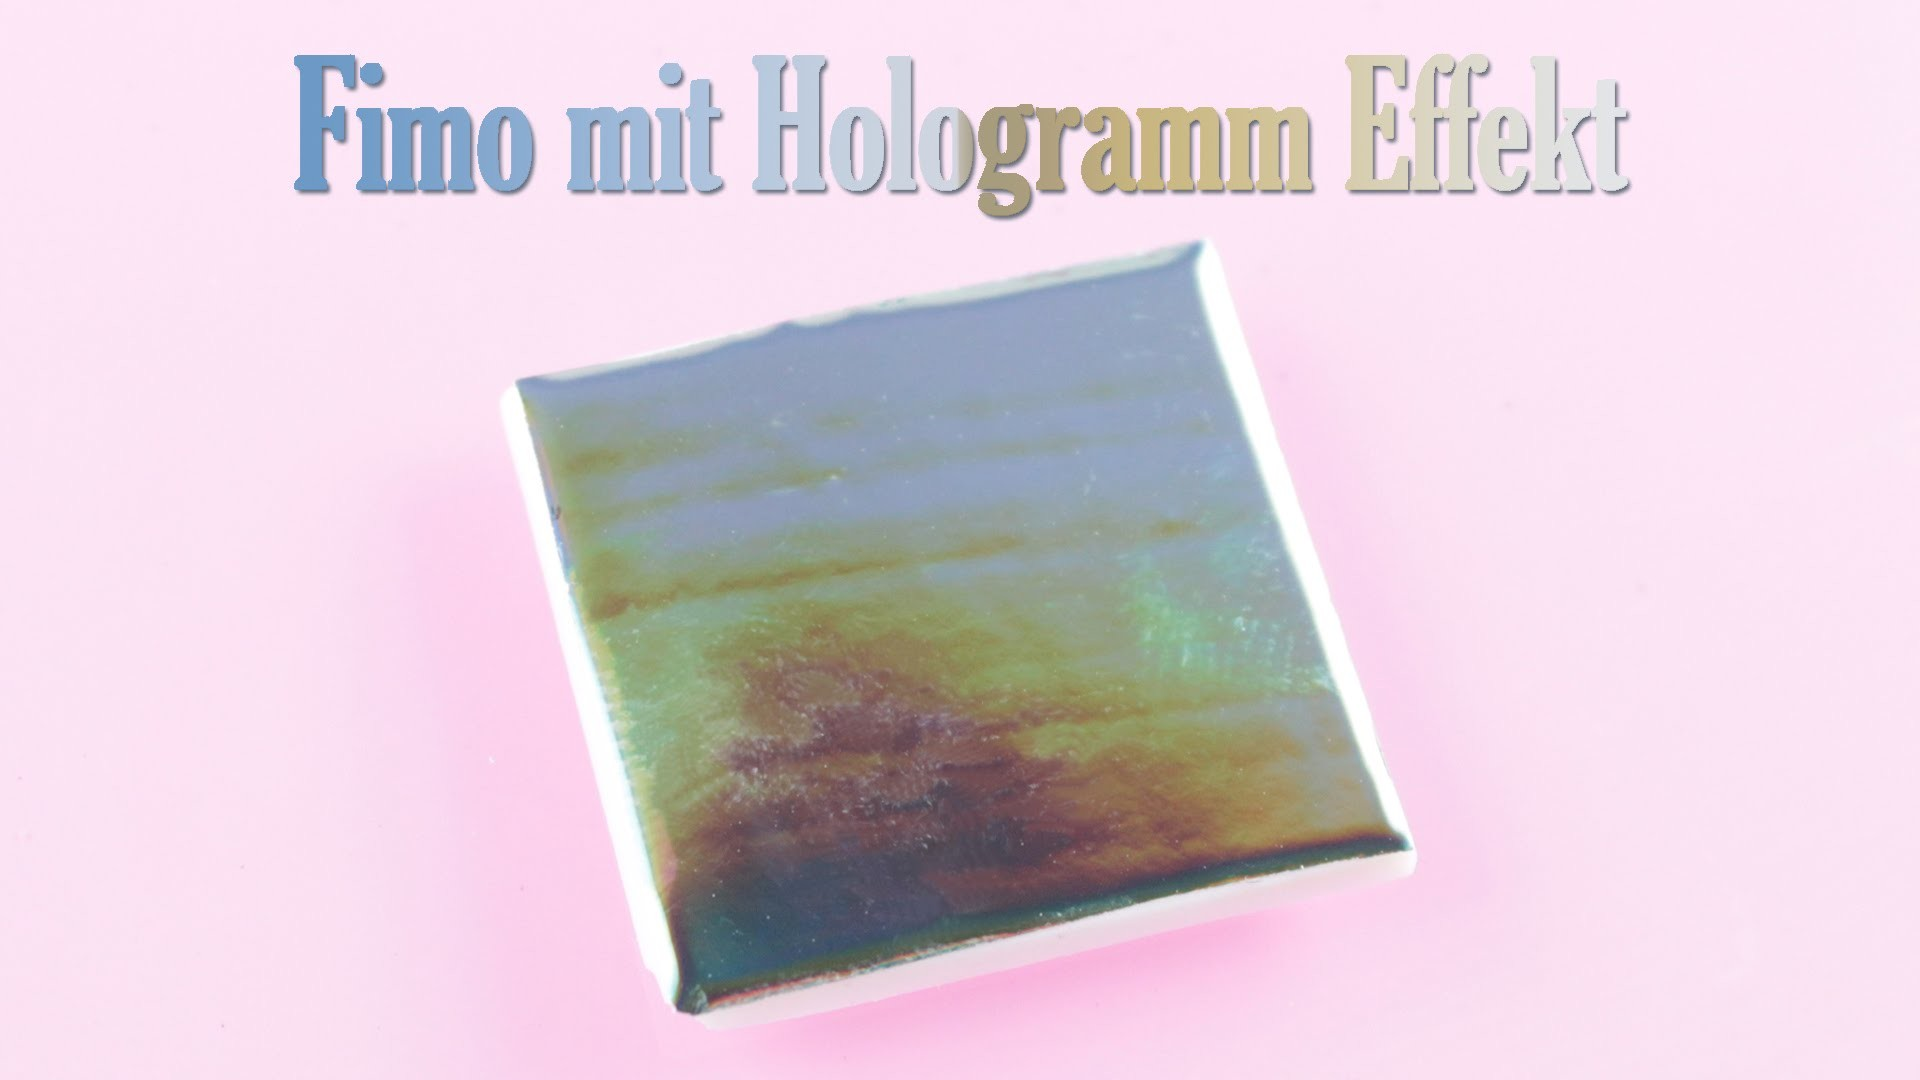 [Fimo Friday] Fimo mit Hologramm Effekt | Polymer Clay | Anielas Fimo